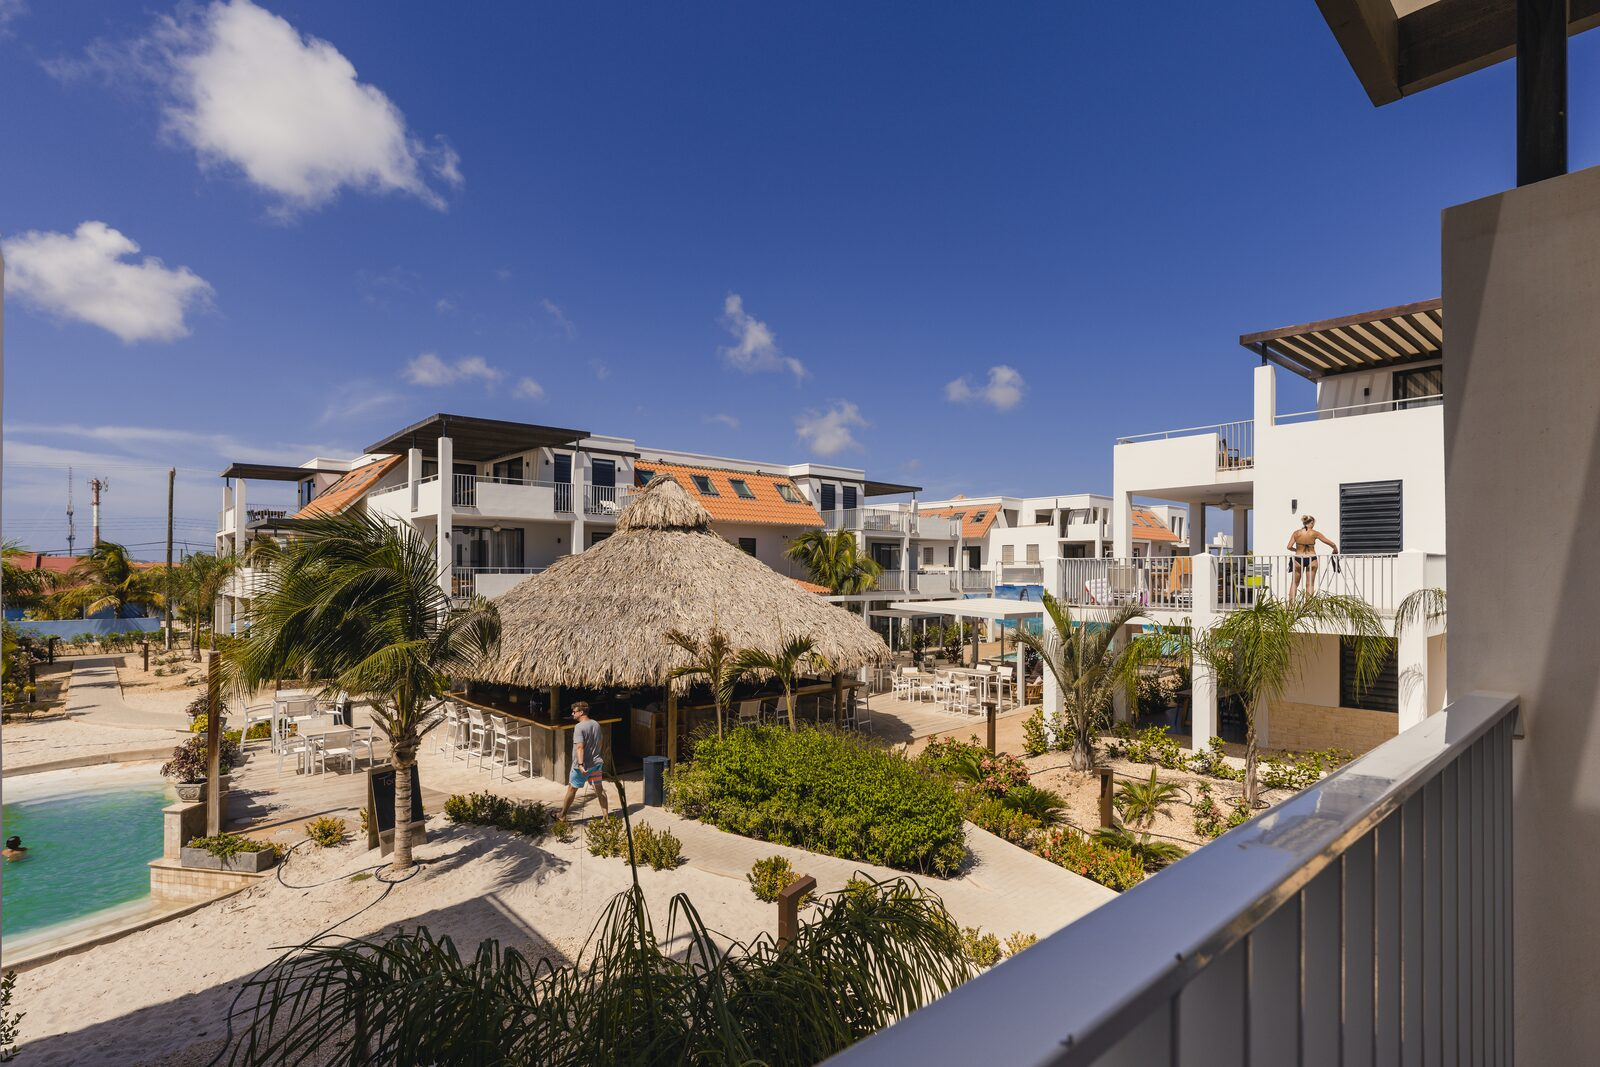 Luxury resort at Bonaire